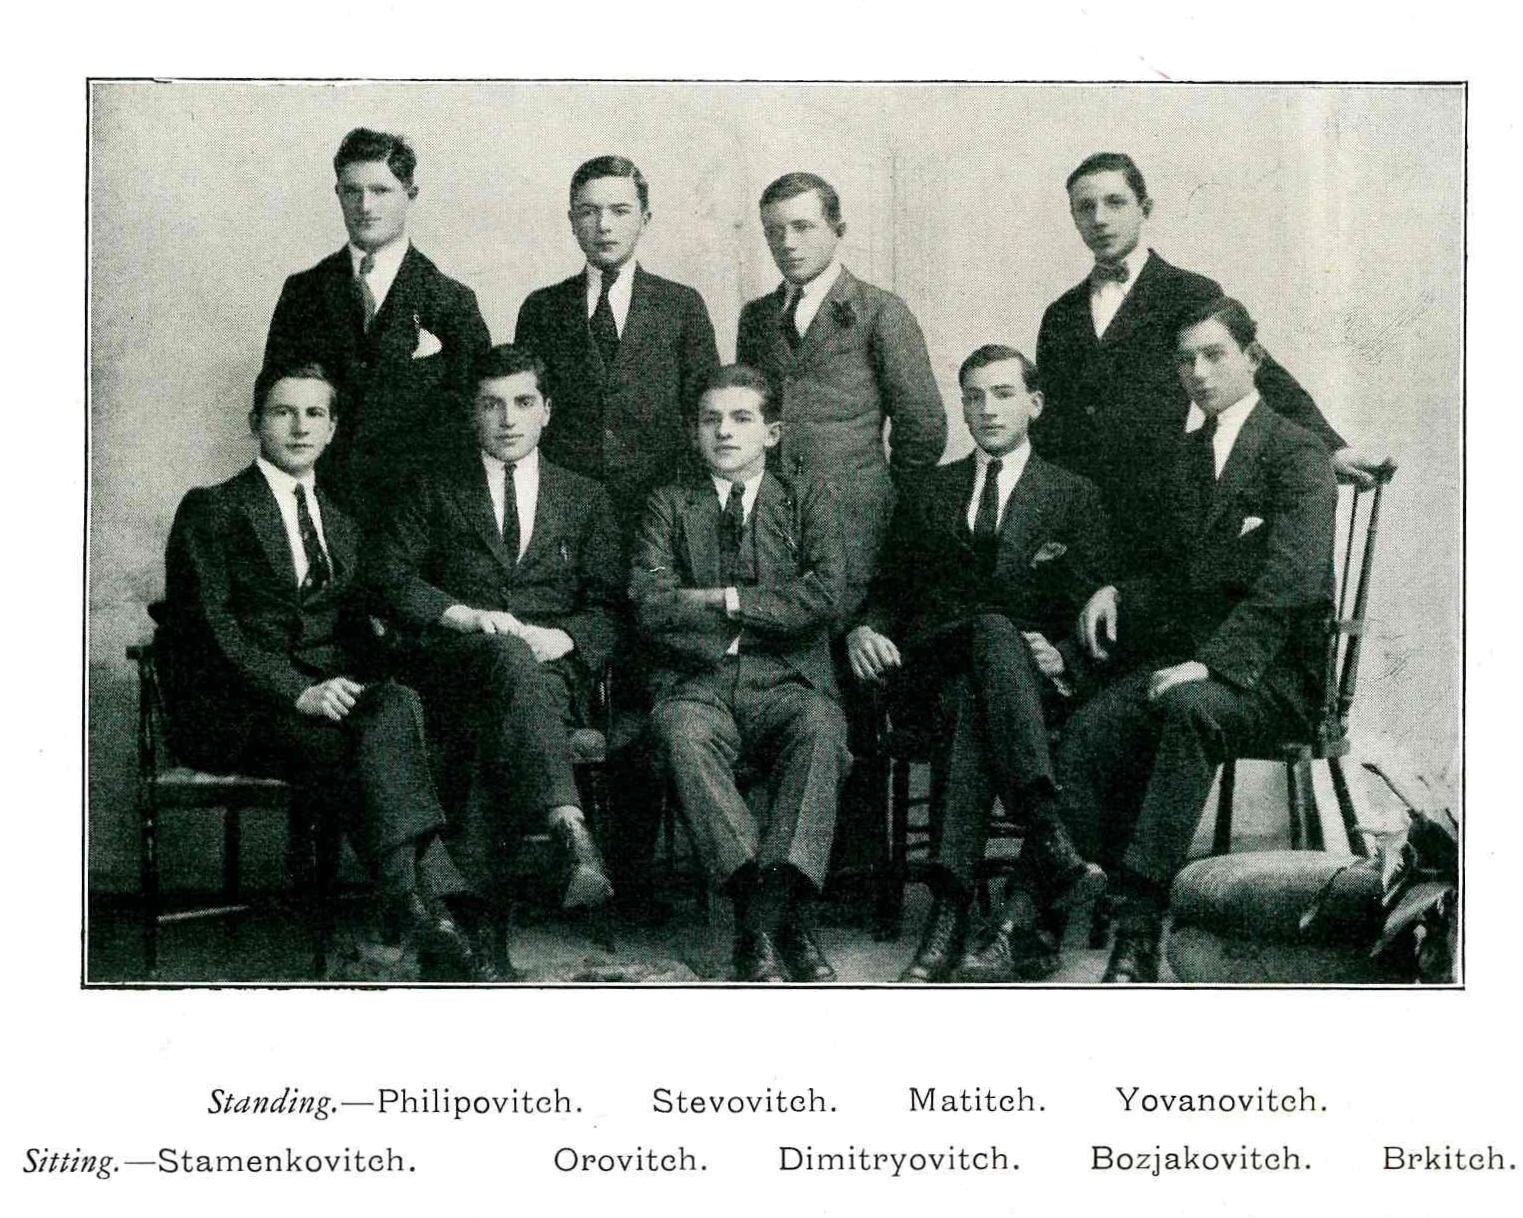 Some of the Serbian refugees who attended the High School of Dundee.